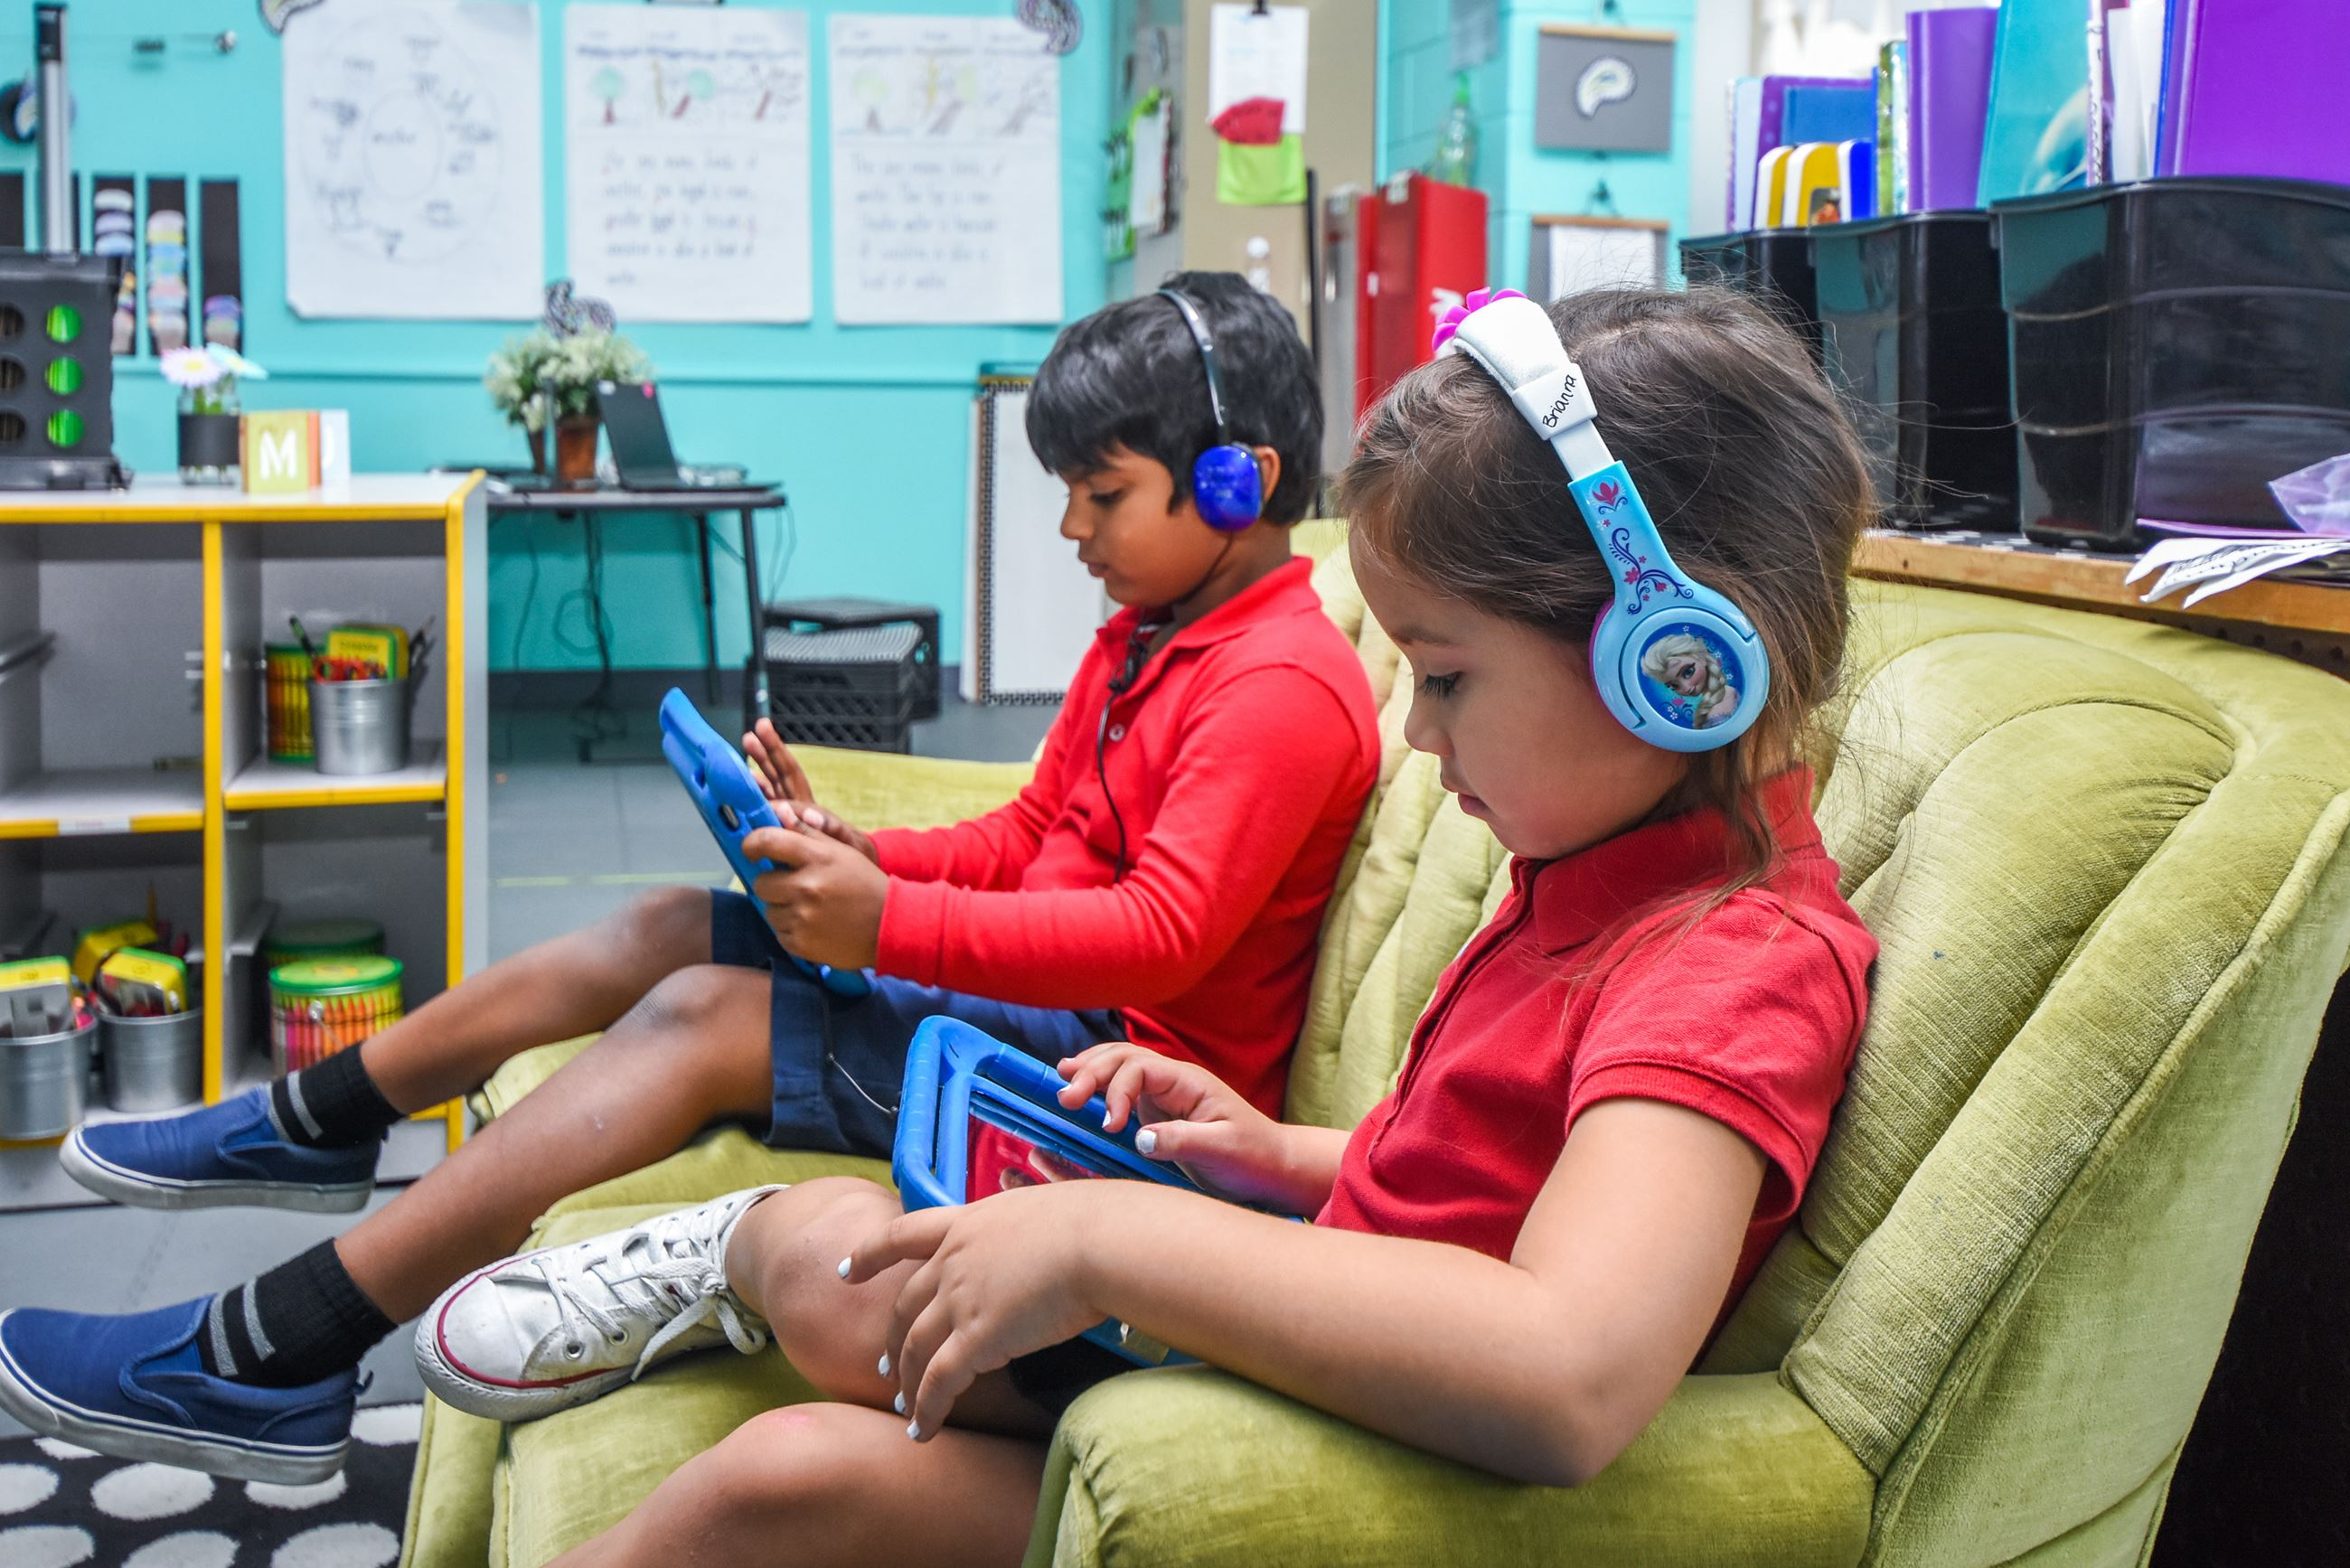 A girl and a boy sitting on a couch in a classroom.  Both wearing headphones and working on iPads.